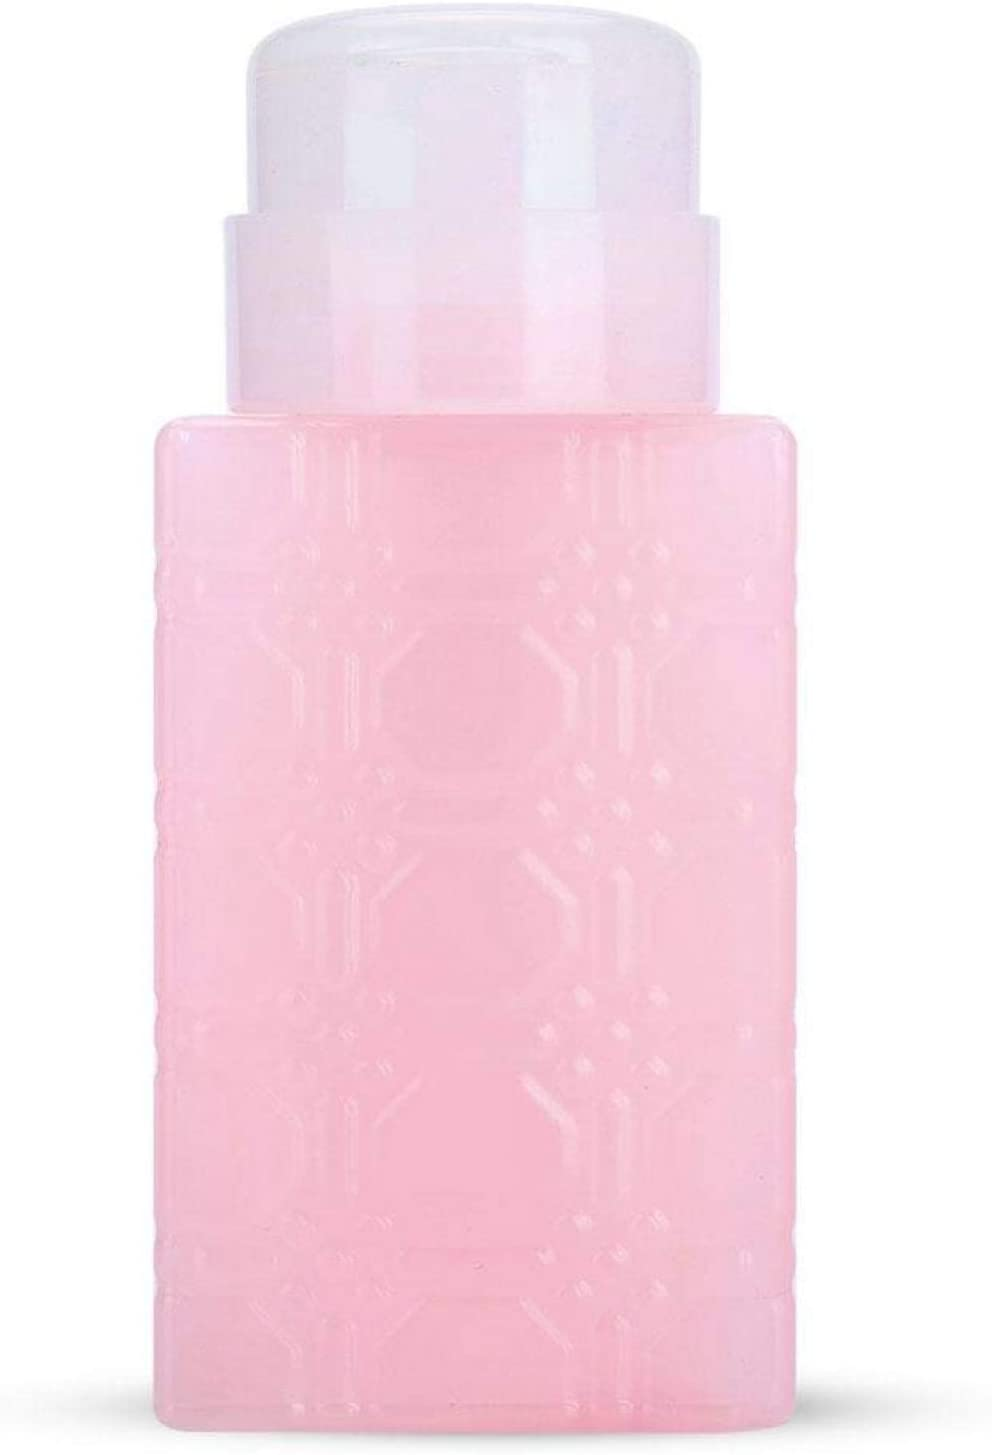 shop Jeanoko Pump Bottle Portable Makeup Container Special price for a limited time Househ Remover